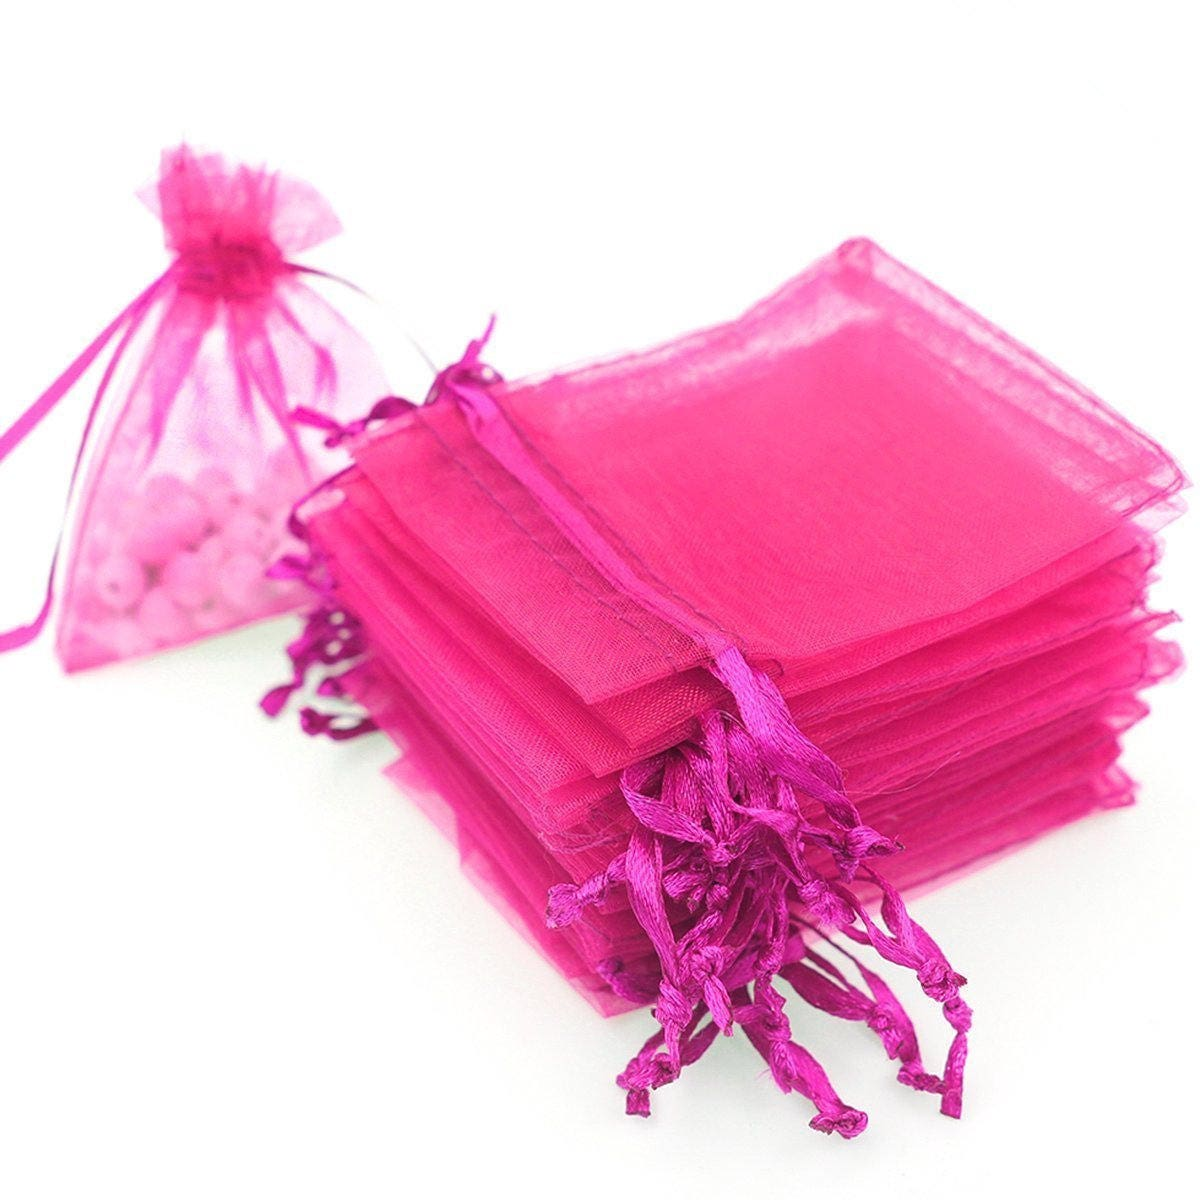 50 Hot Pink Organza Bags 3x4 Inch Sheer Fabric Wedding Favor